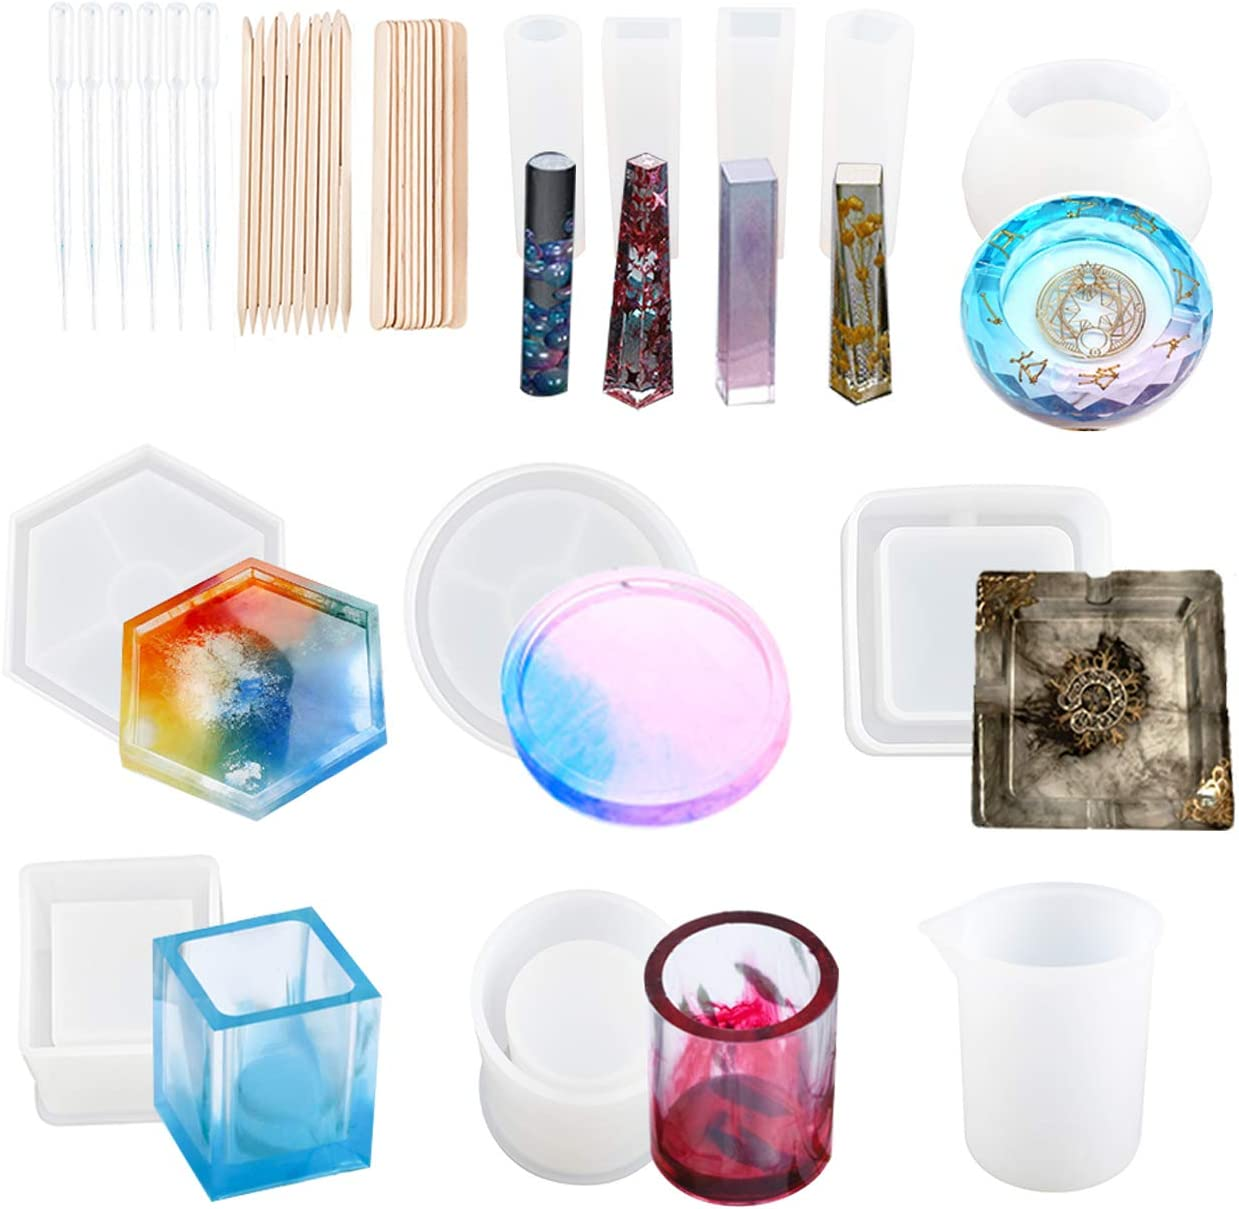 Toolly 37Pcs Silicone Molds Resin Epoxy Resin Casting Art Molds for DIY Cup Pen Soap Candle Holder Ashtray Flower Pot Coaster Pendant Cylinder Cuboid Hexagon Round Molds